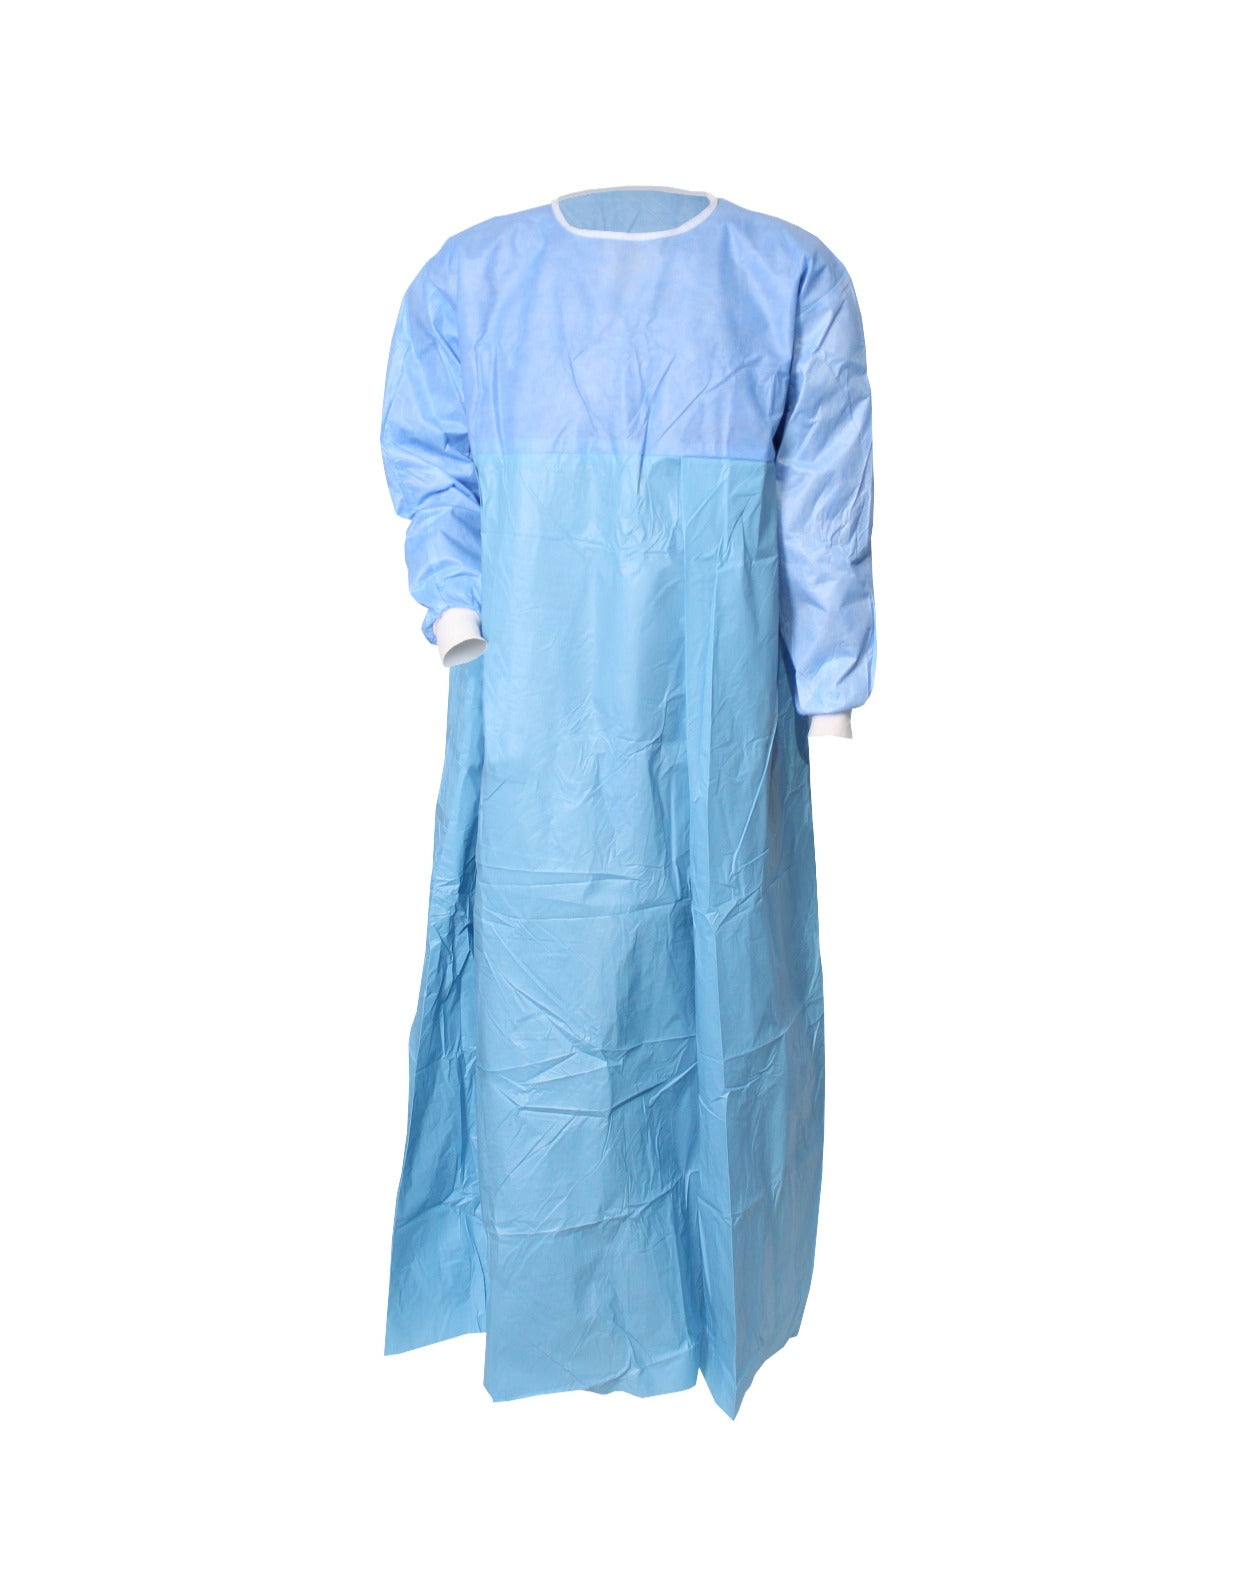 Sterile Urology Surgical Gown